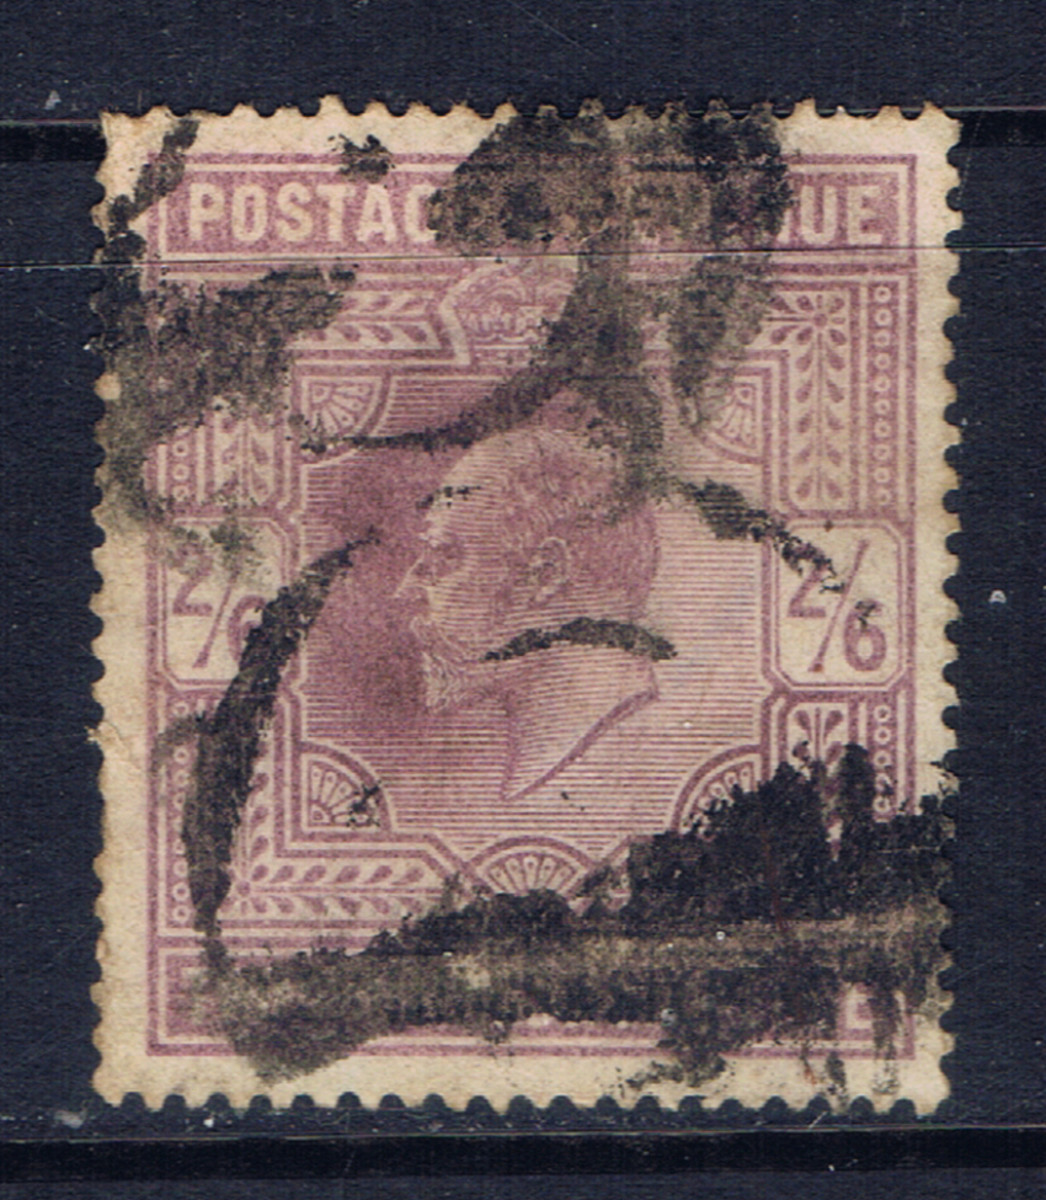 This stamp from Great Britain has a catalog value of $150 for a used copy.  However, this copy has a very heavy and messy cancel, and should sell at a huge discount.